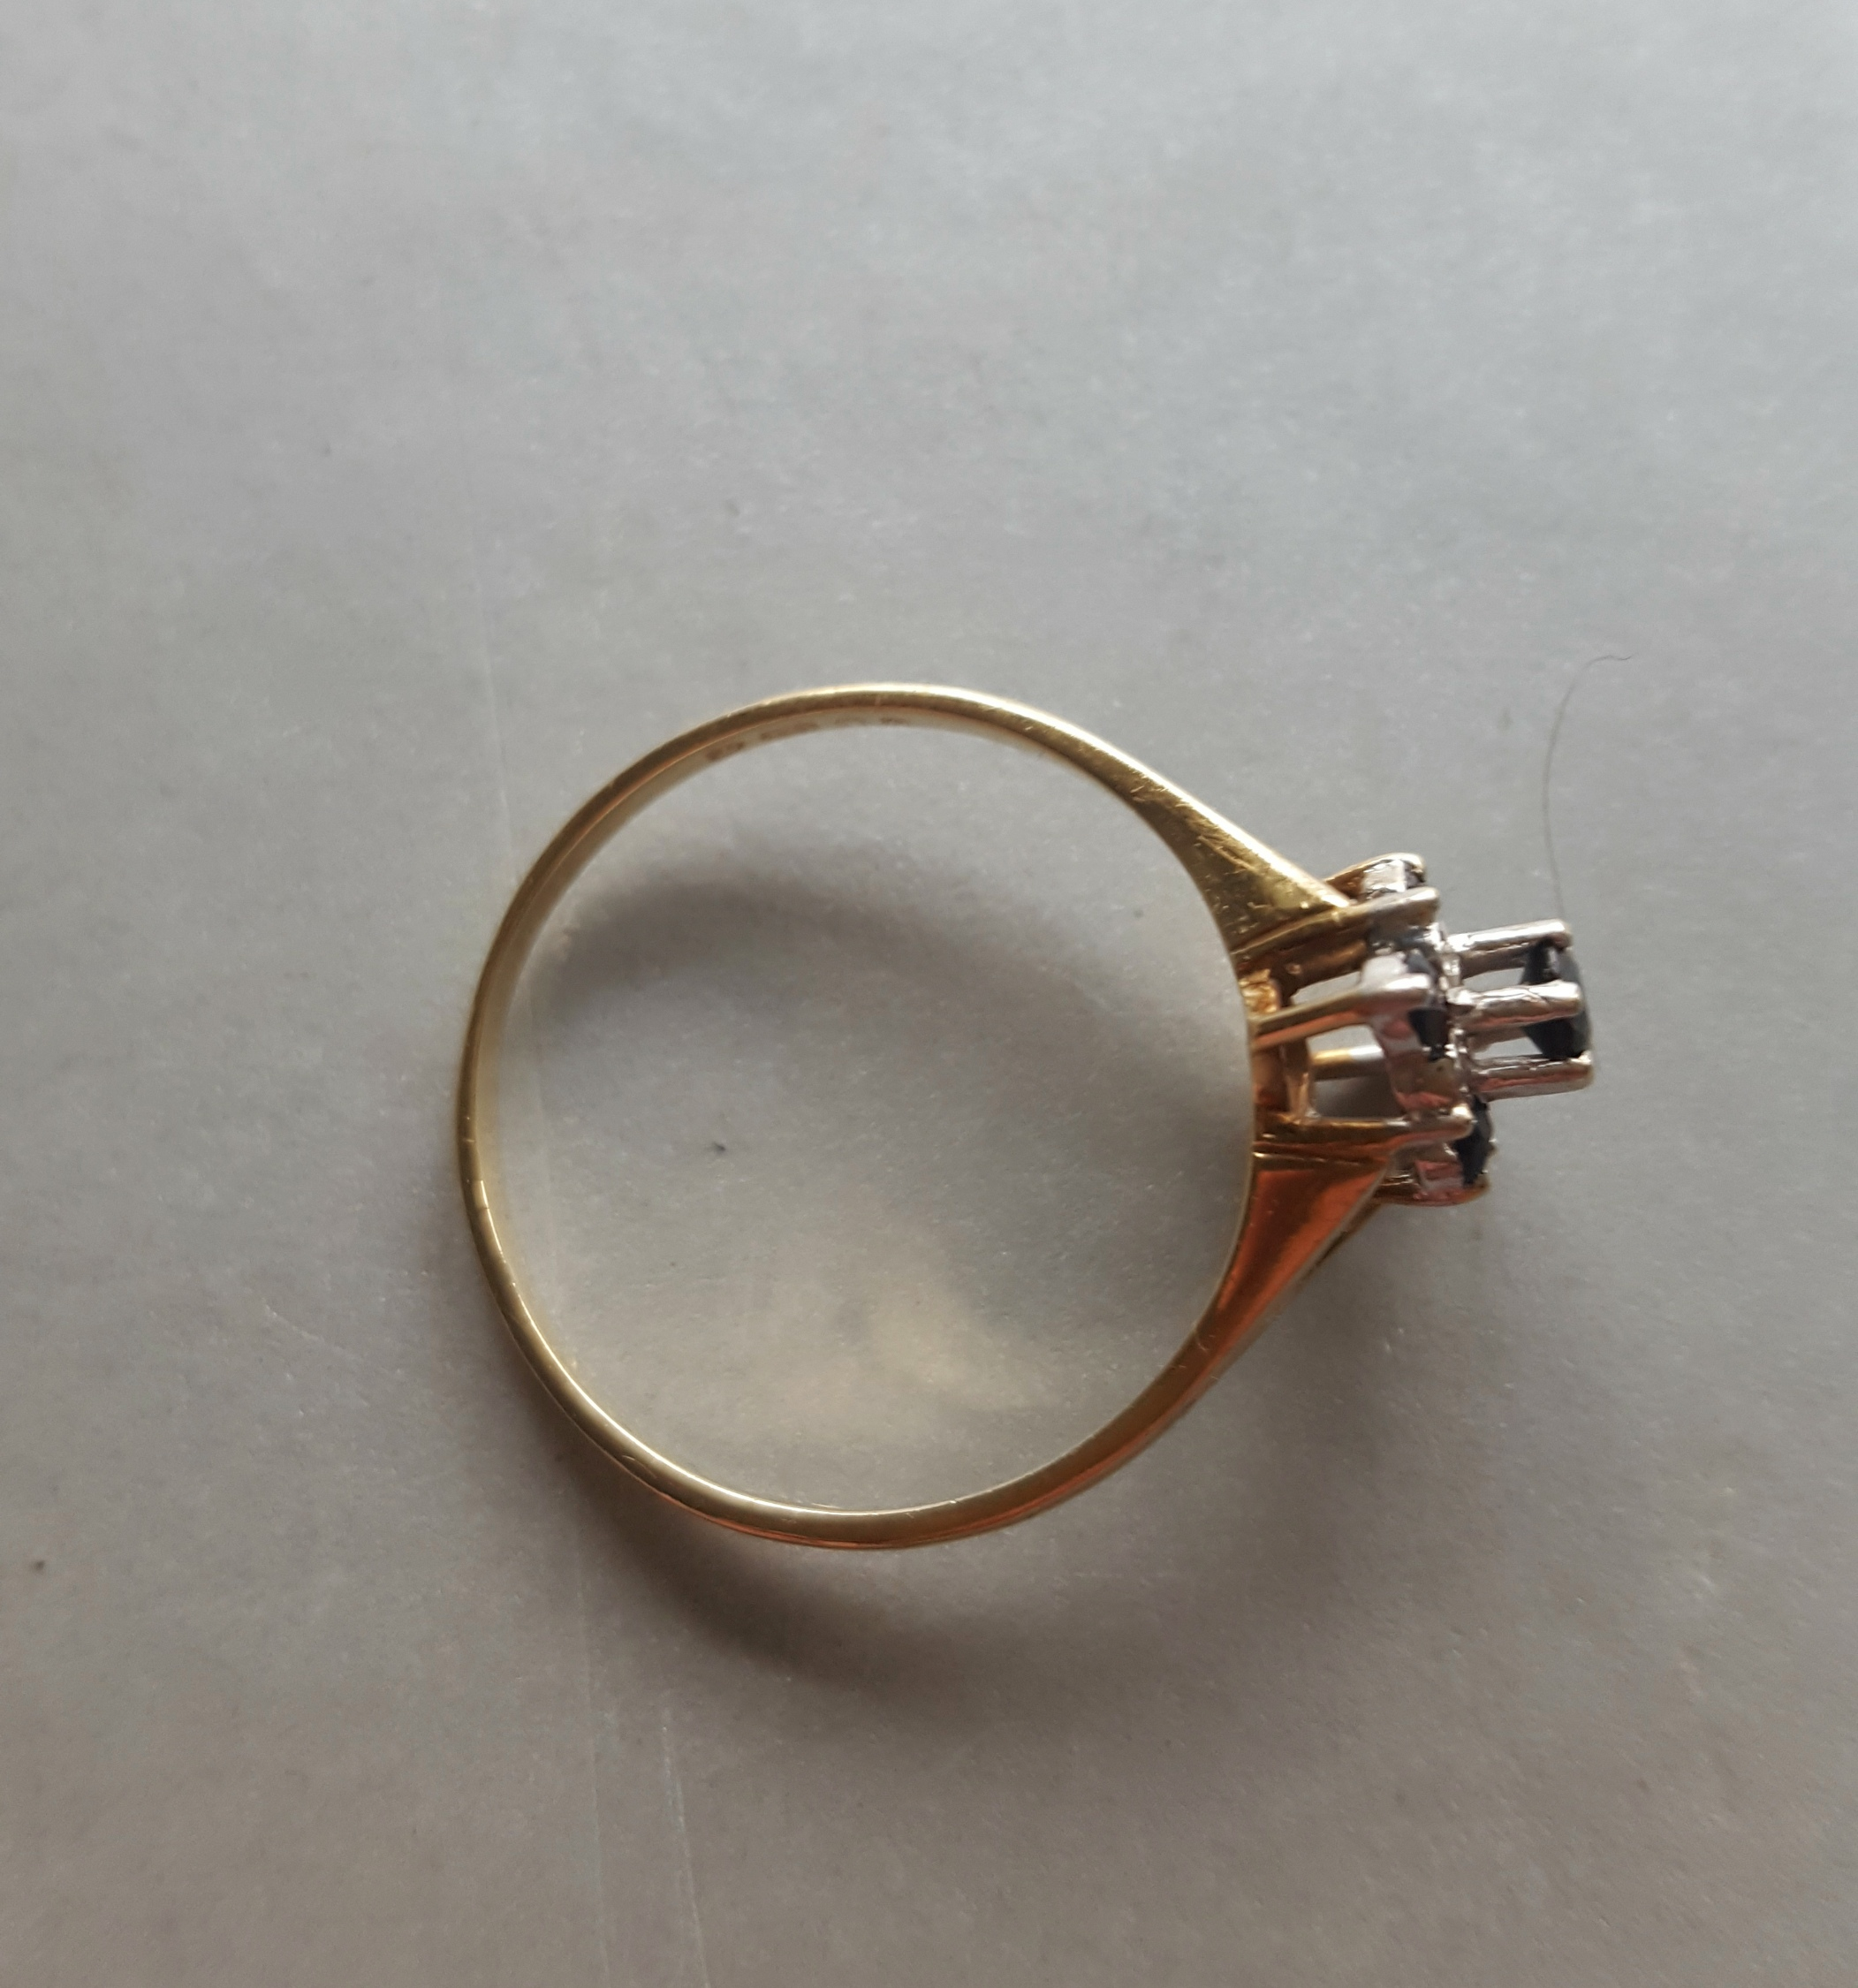 Lot 53 - Vintage 9ct Gold Sapphire & Diamond Ring Sheffield 1985 Size 'O'